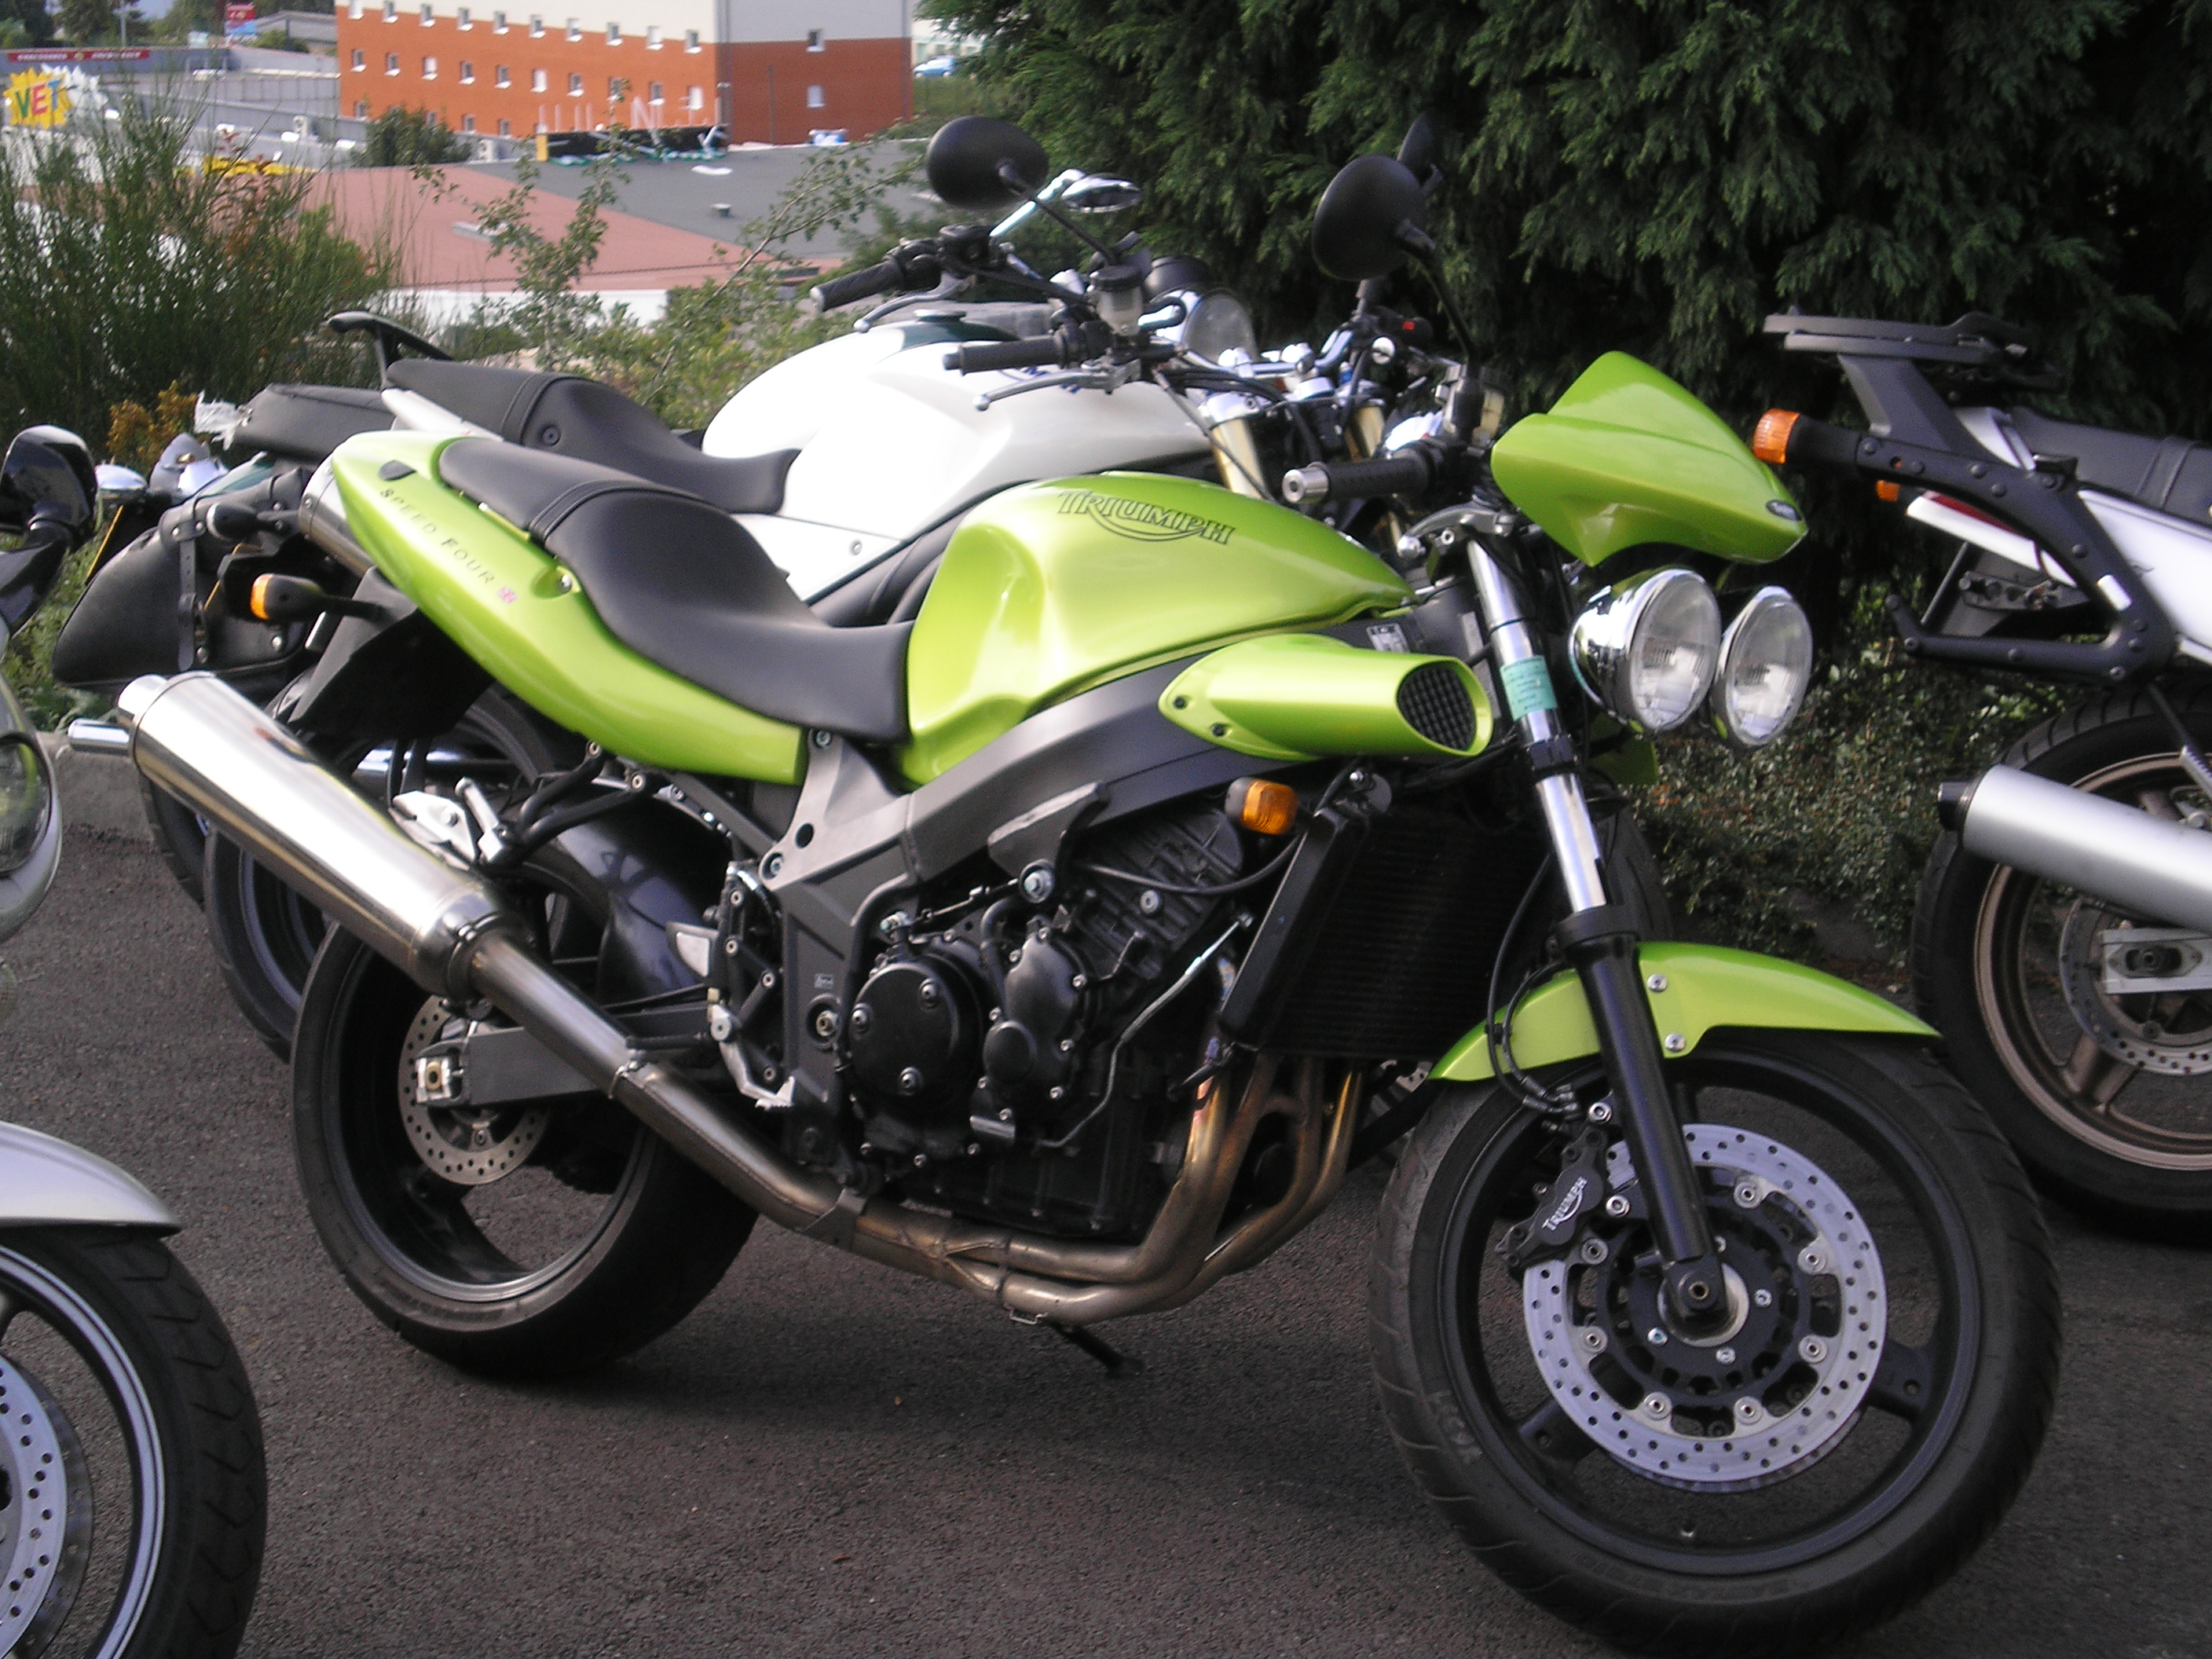 Triumph Speed Four 2002 images #159495